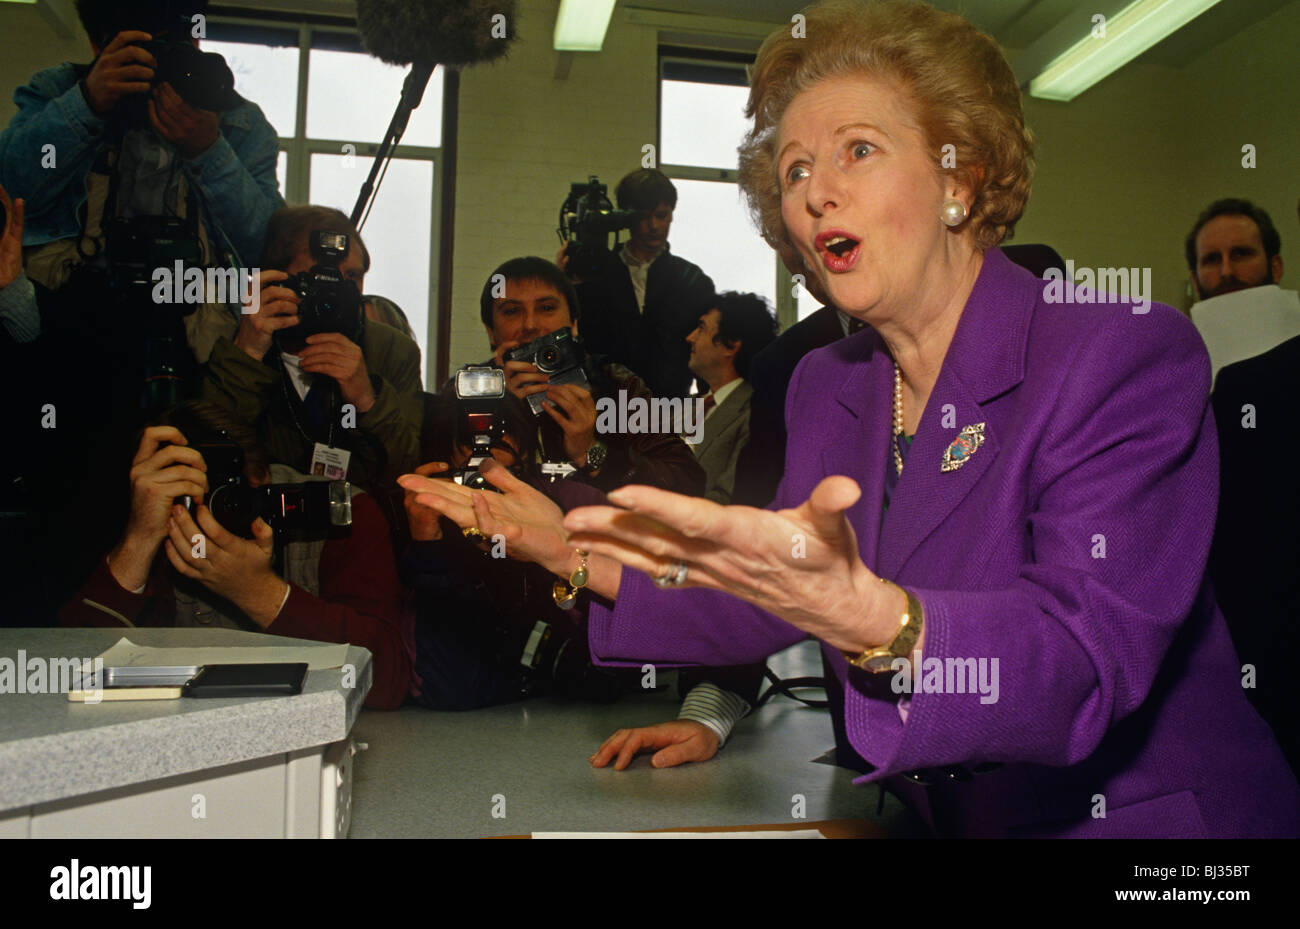 Margaret Thatcher plays up to the media at a North London school during John Major's eventual 1992 general election - Stock Image